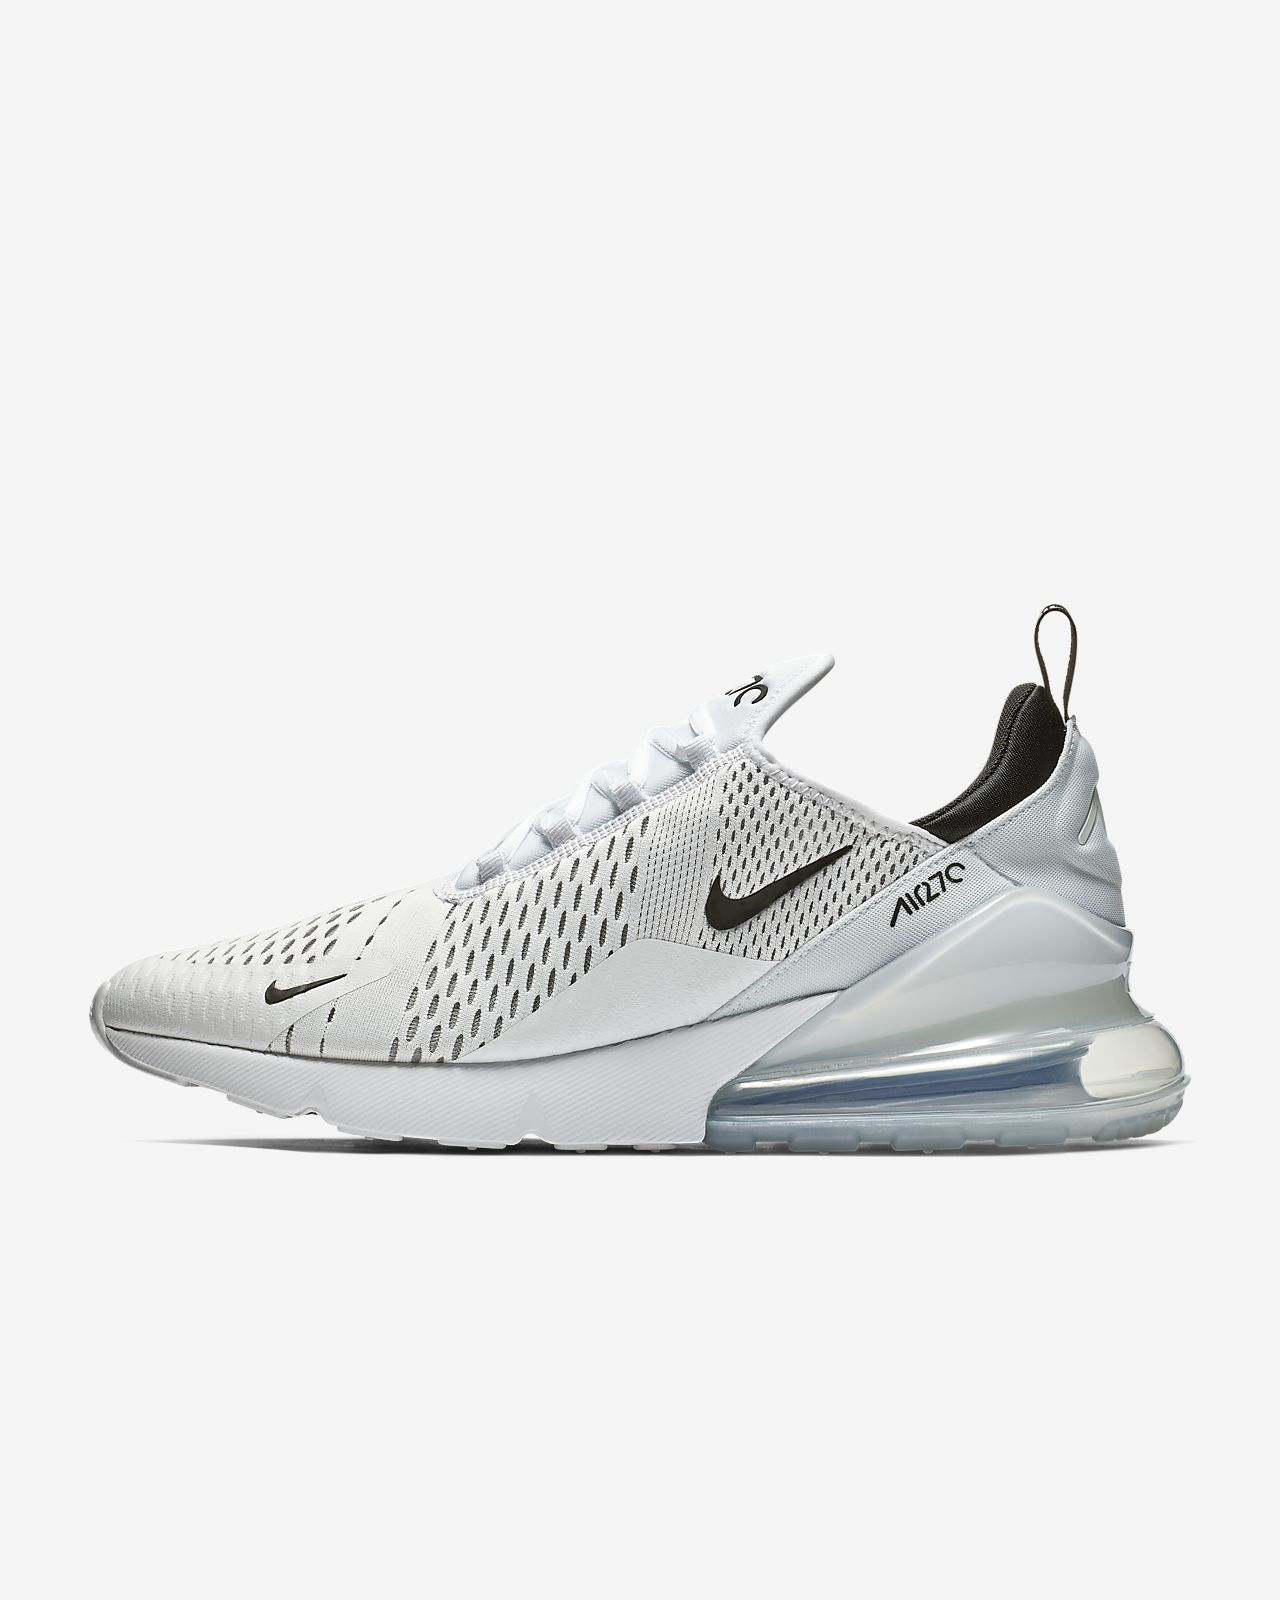 promo code f88de 43e74 Nike Air Max 270 Men's Shoe. Nike.com GB